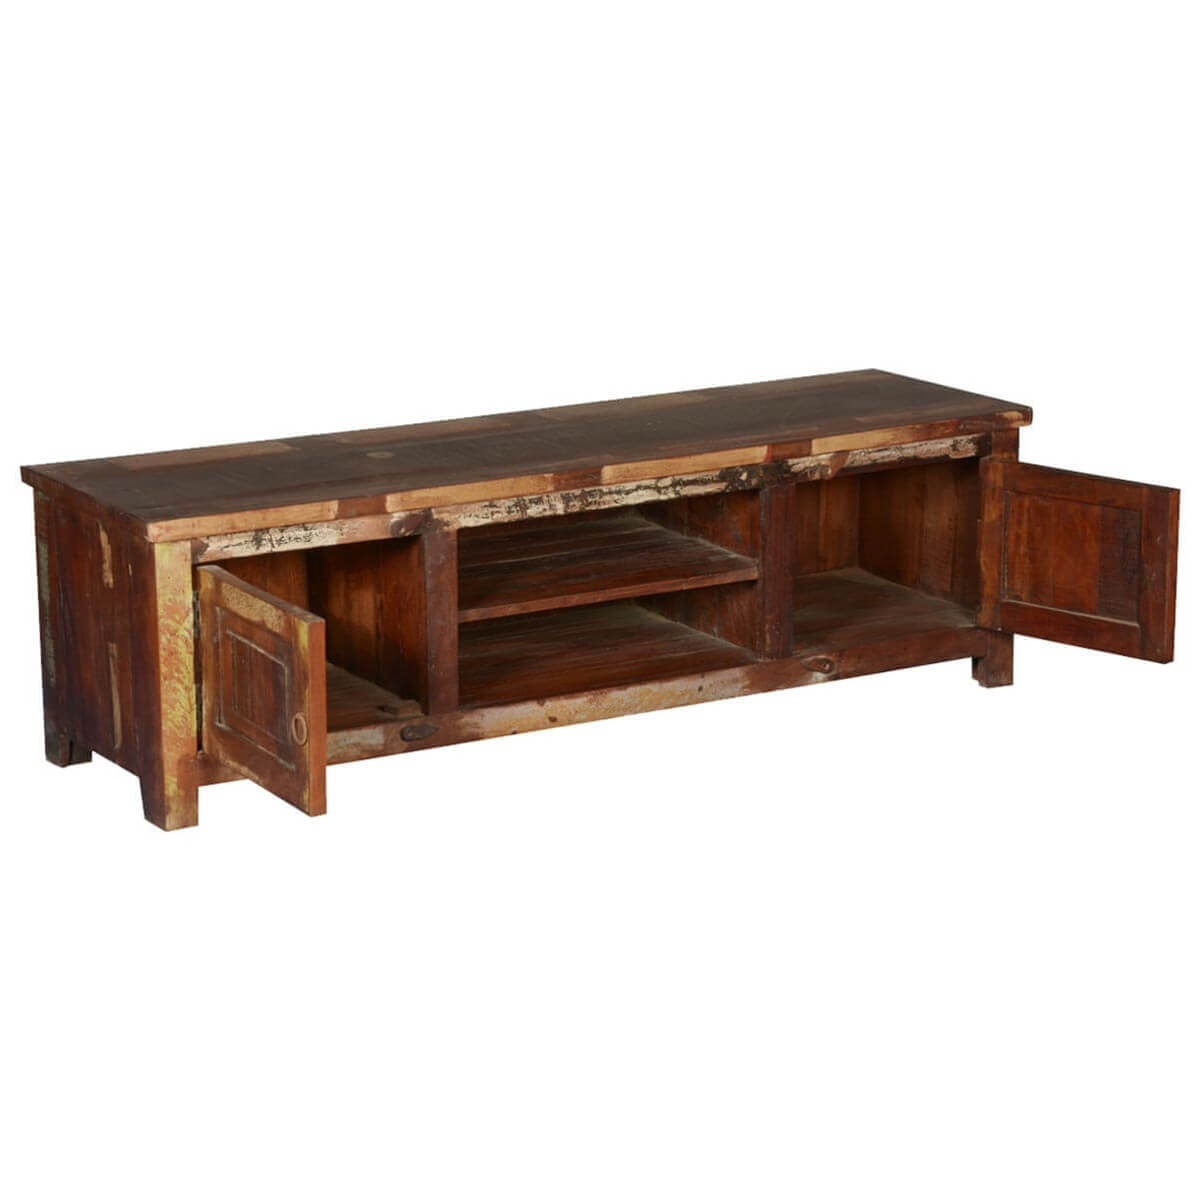 Old chicago rustic reclaimed wood tv console media cabinet